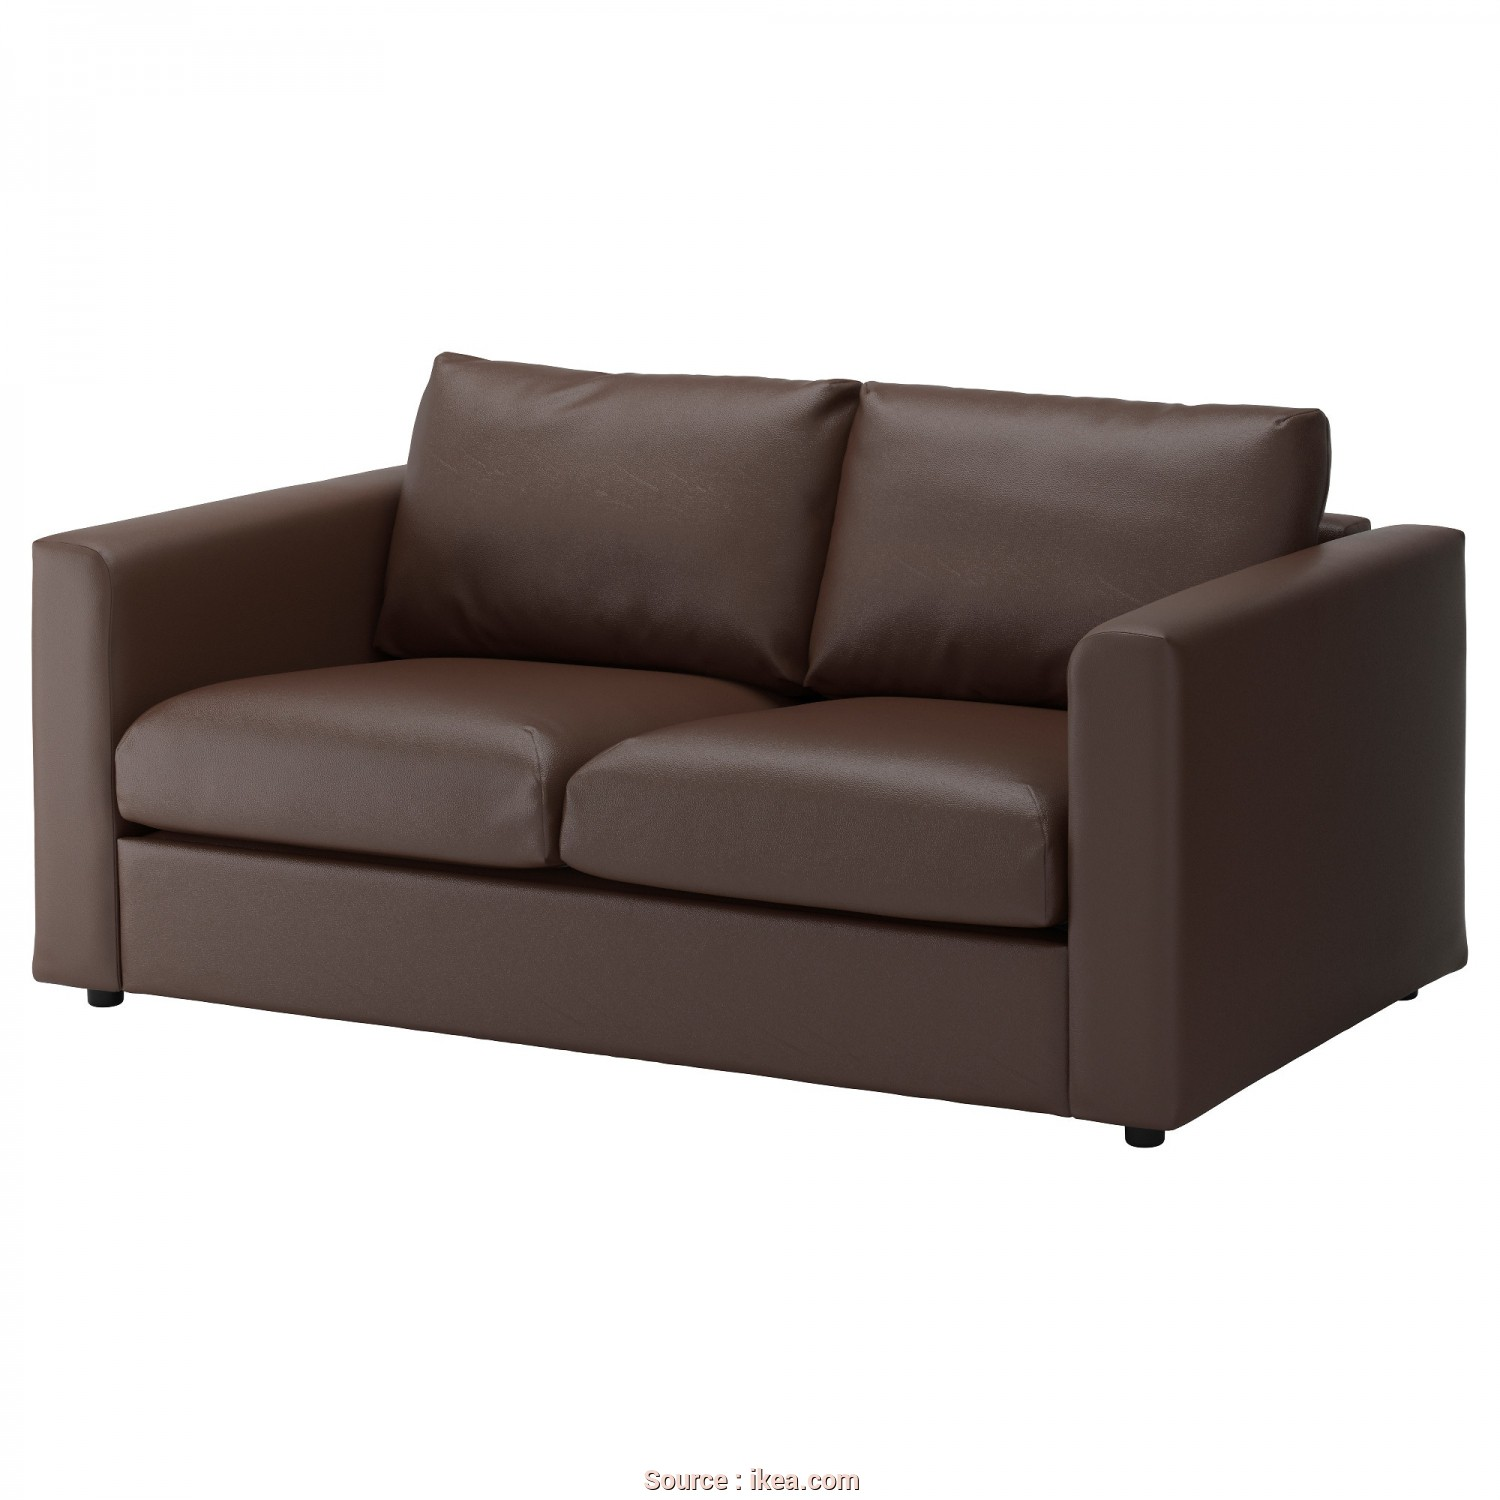 Klippan Ikea Leather, Locale IKEA VIMLE 2-Seat Sofa, Cover Is Easy To Keep Clean As It Can